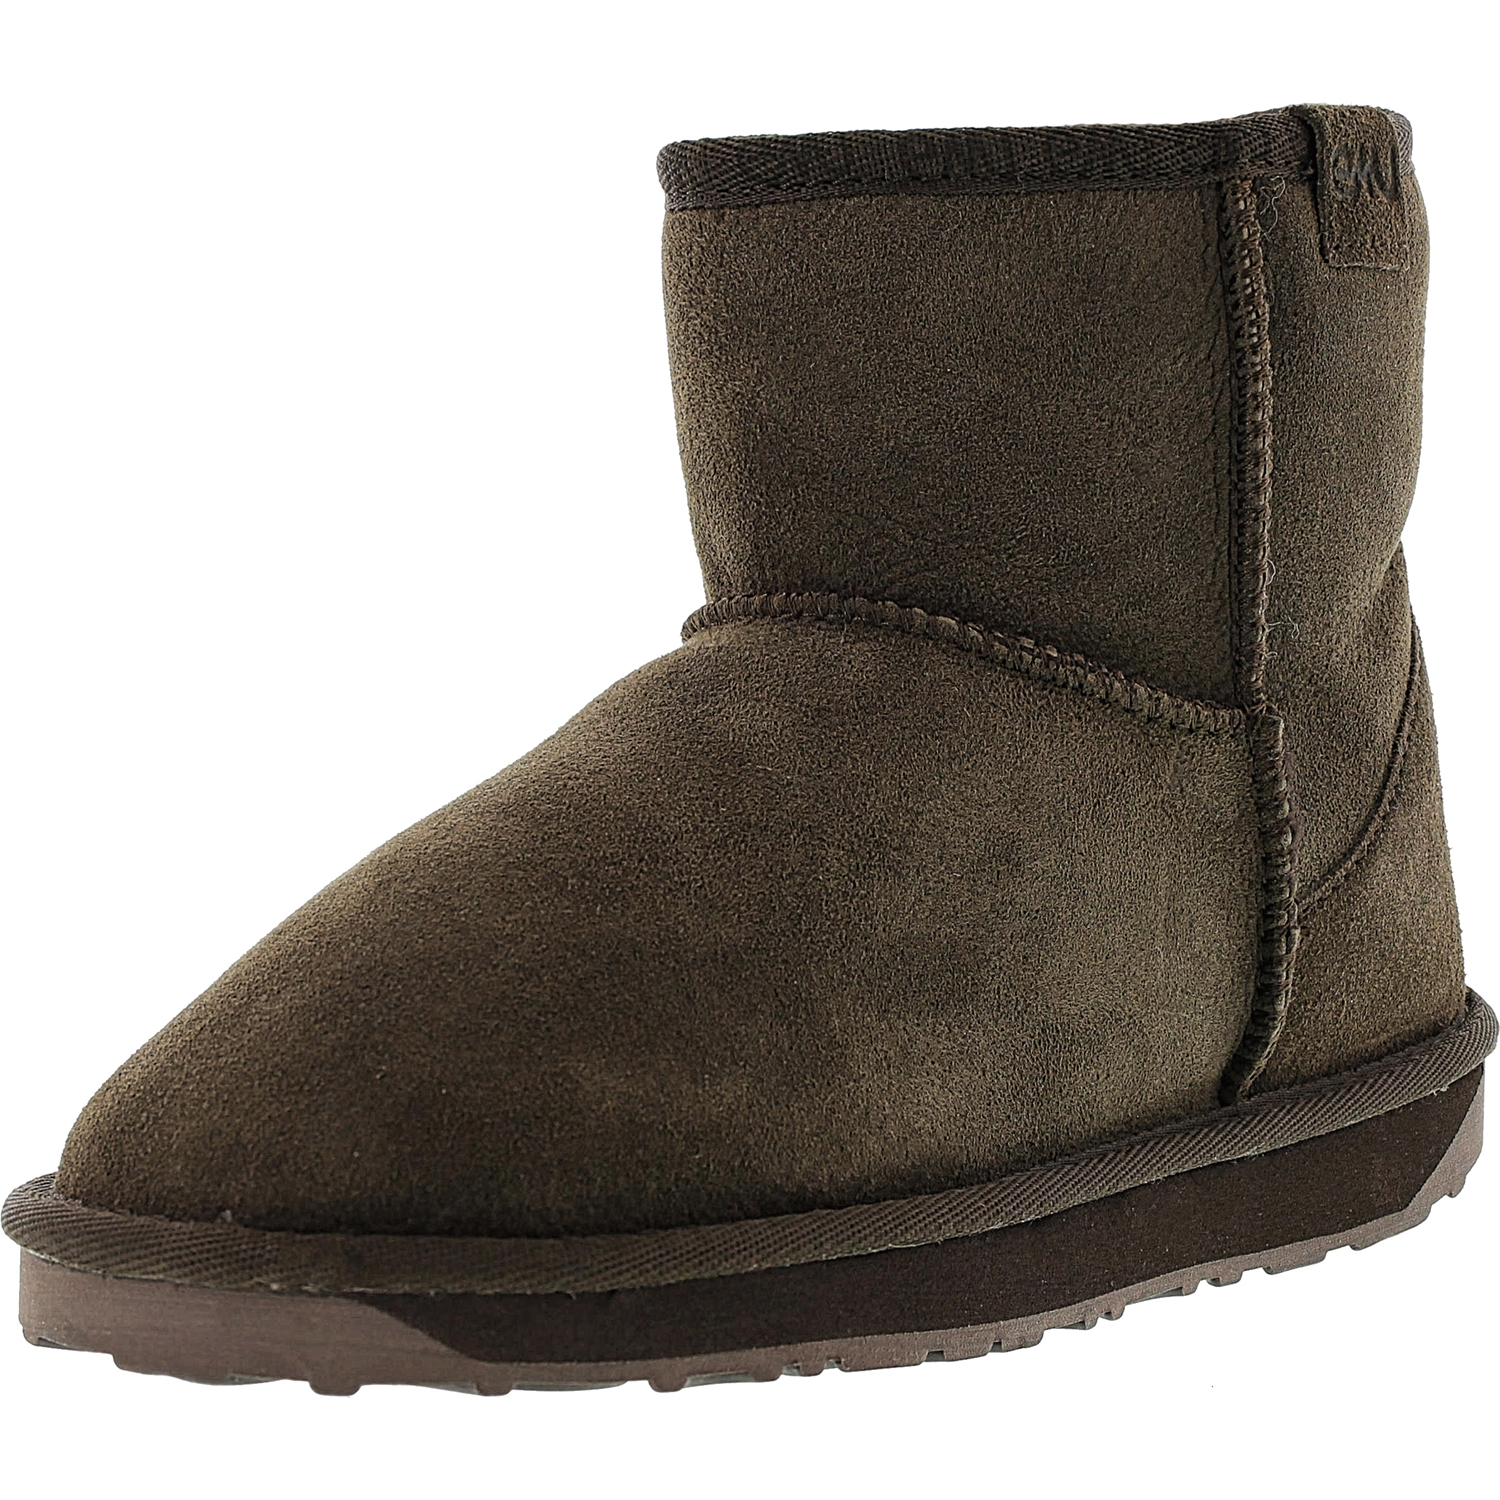 Emu Women's Stinger Mini Chocolate Ankle-High Sheepskin Boot - 9M